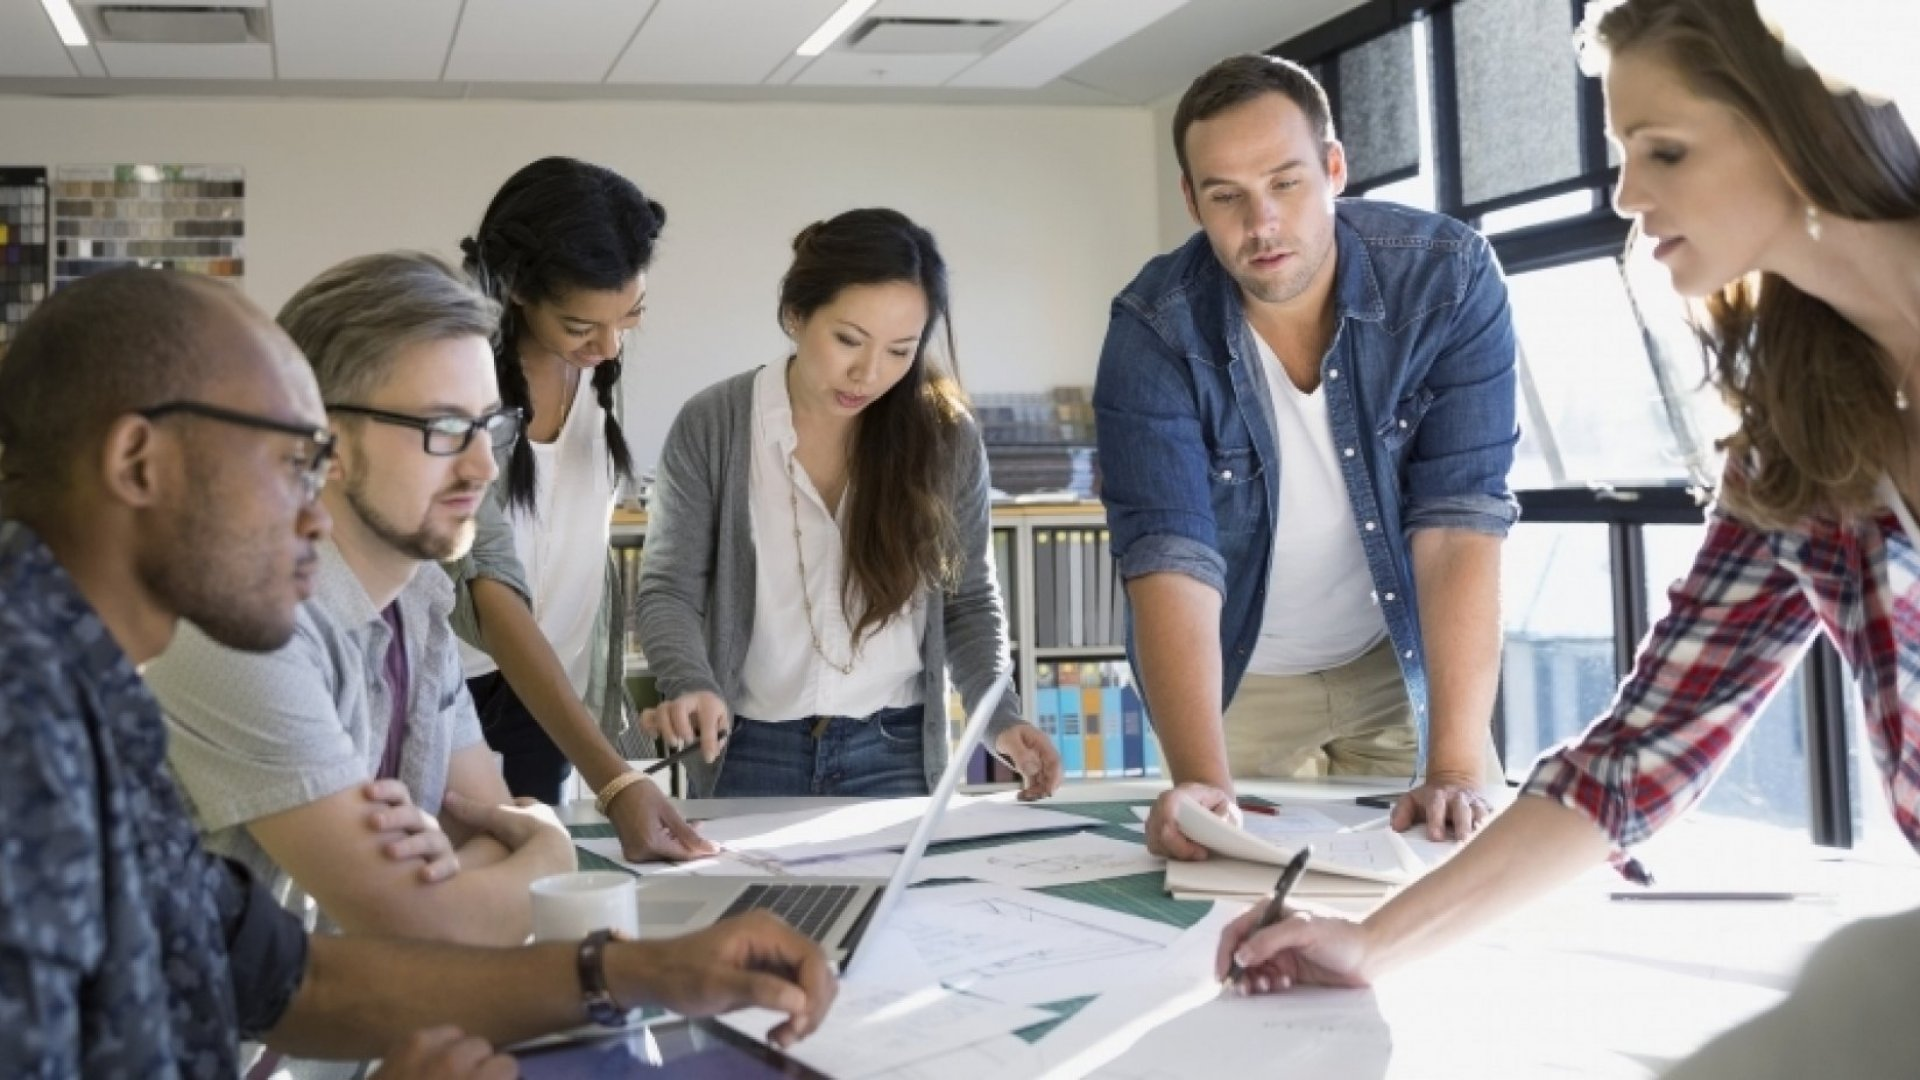 11 Questions You Need to Ask About Your Team's Effectiveness